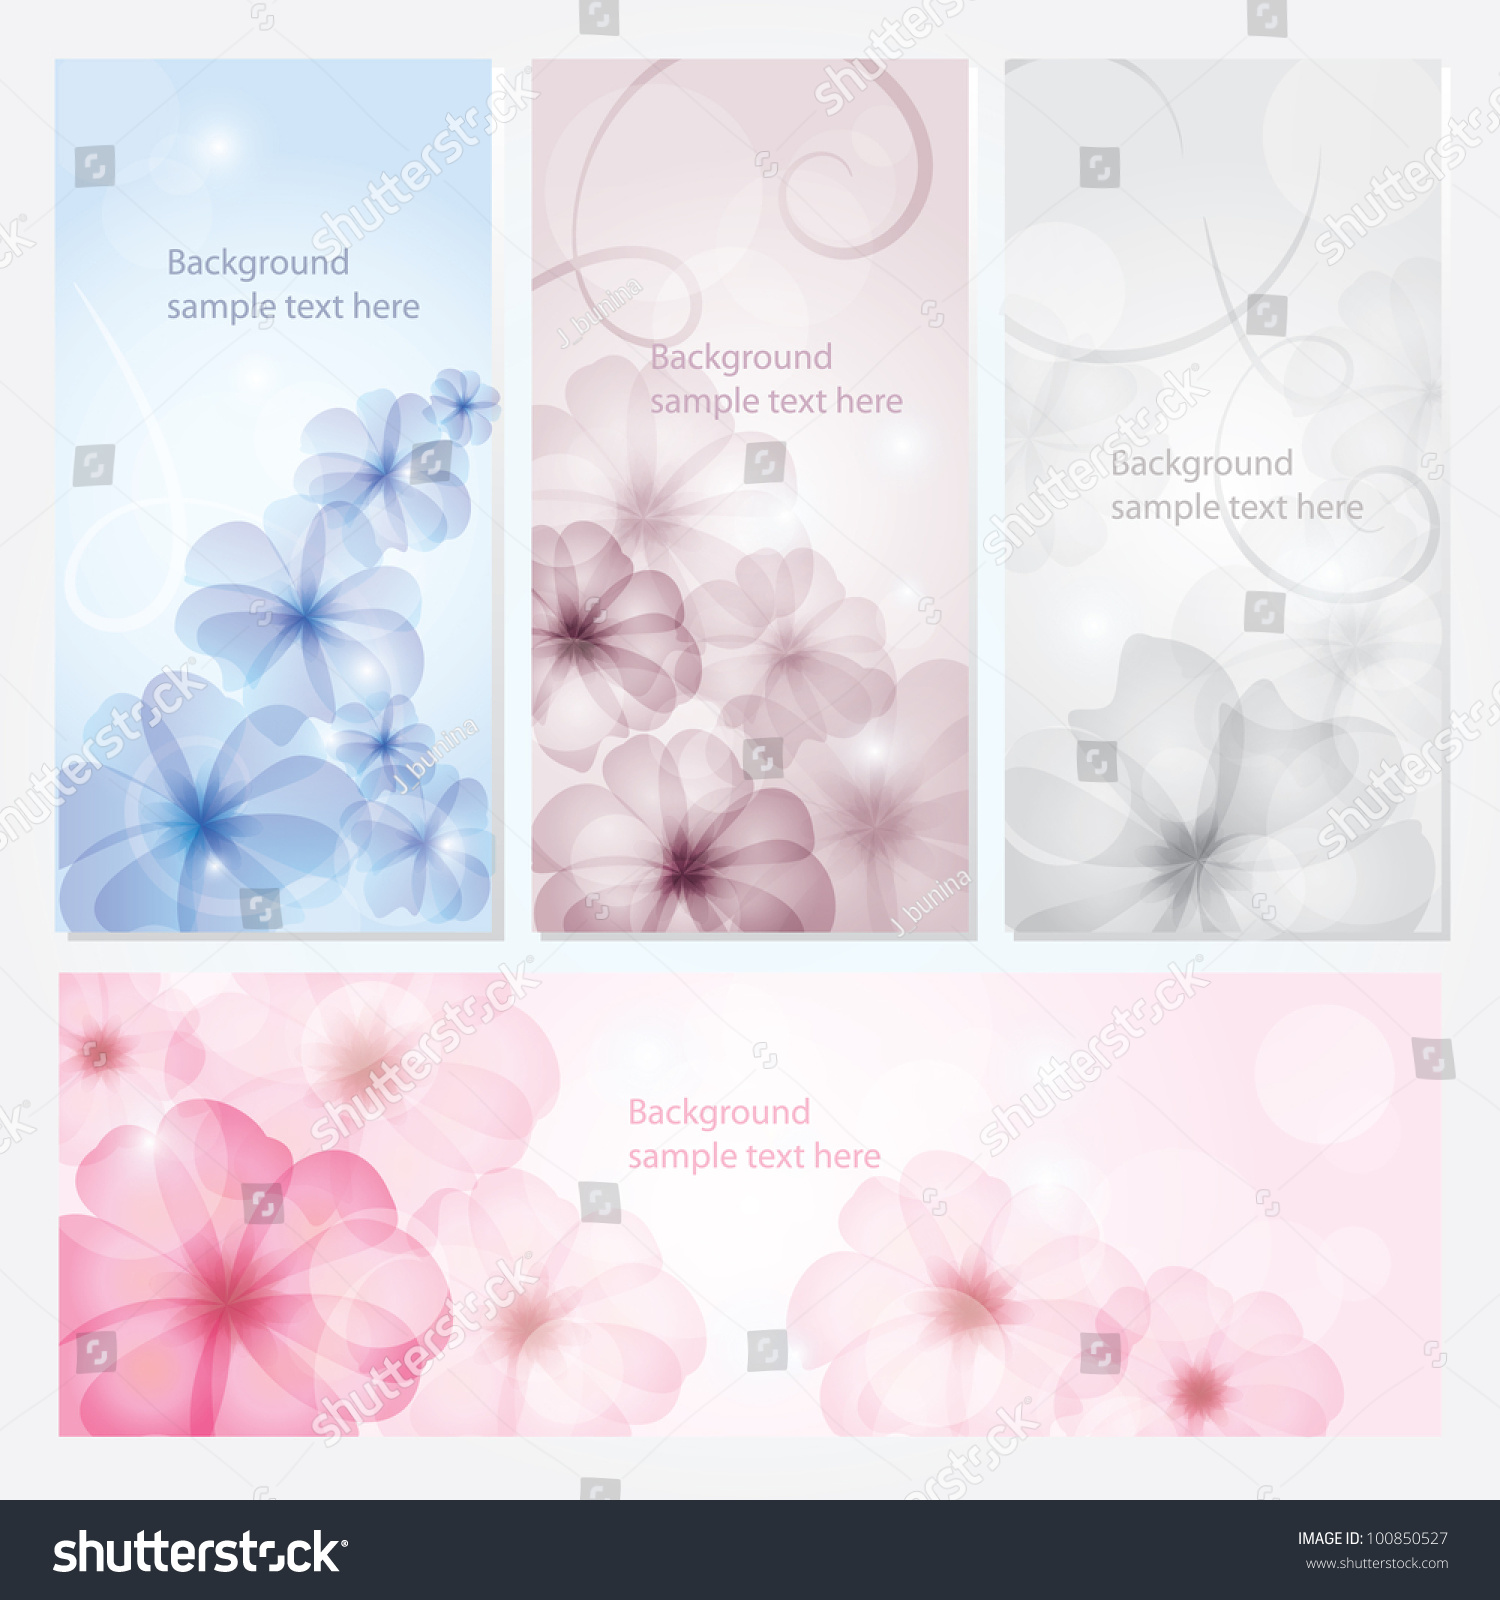 Peony flower isolated on white stock vector 368014568 shutterstock - Vector Card Set With Floral Ornament Design